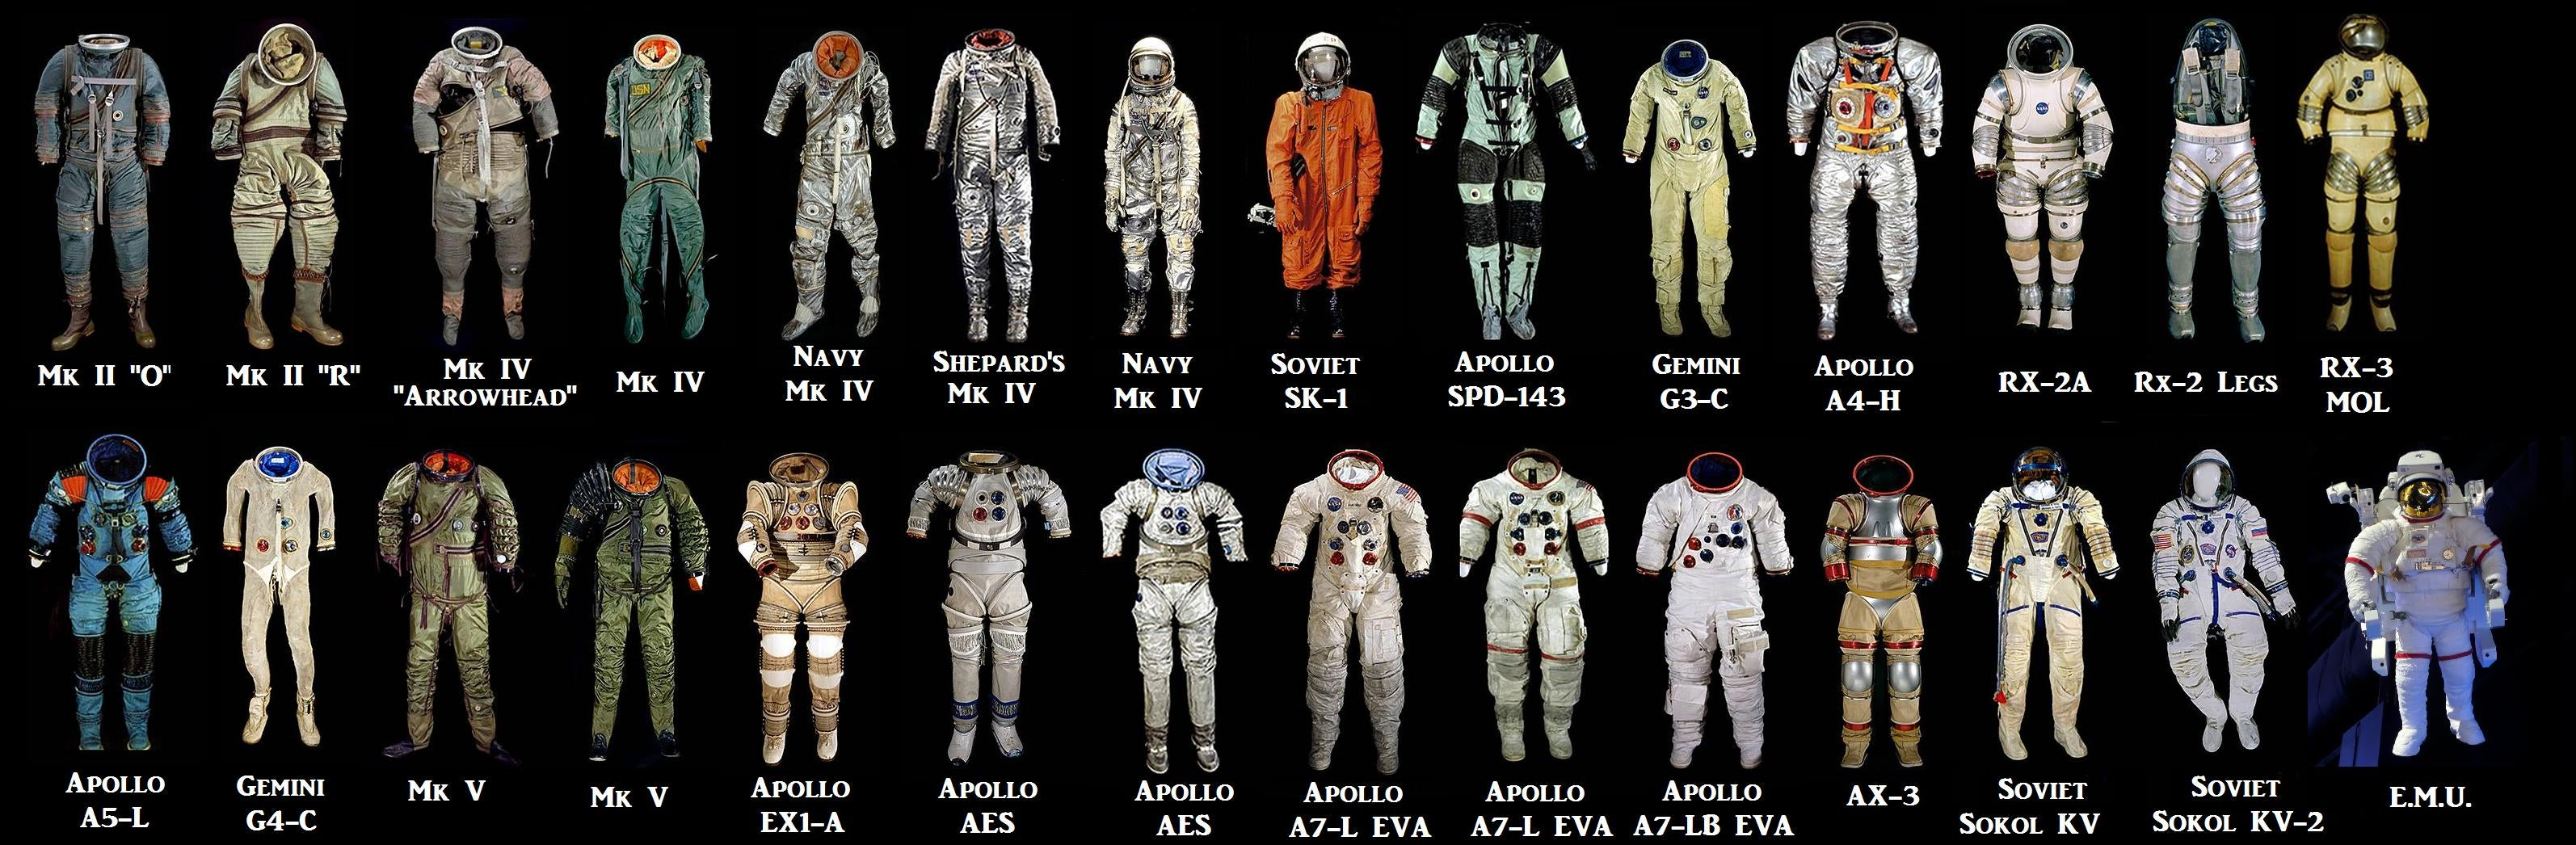 A complete illustrated timeline of spacesuit design for Space suit fabric